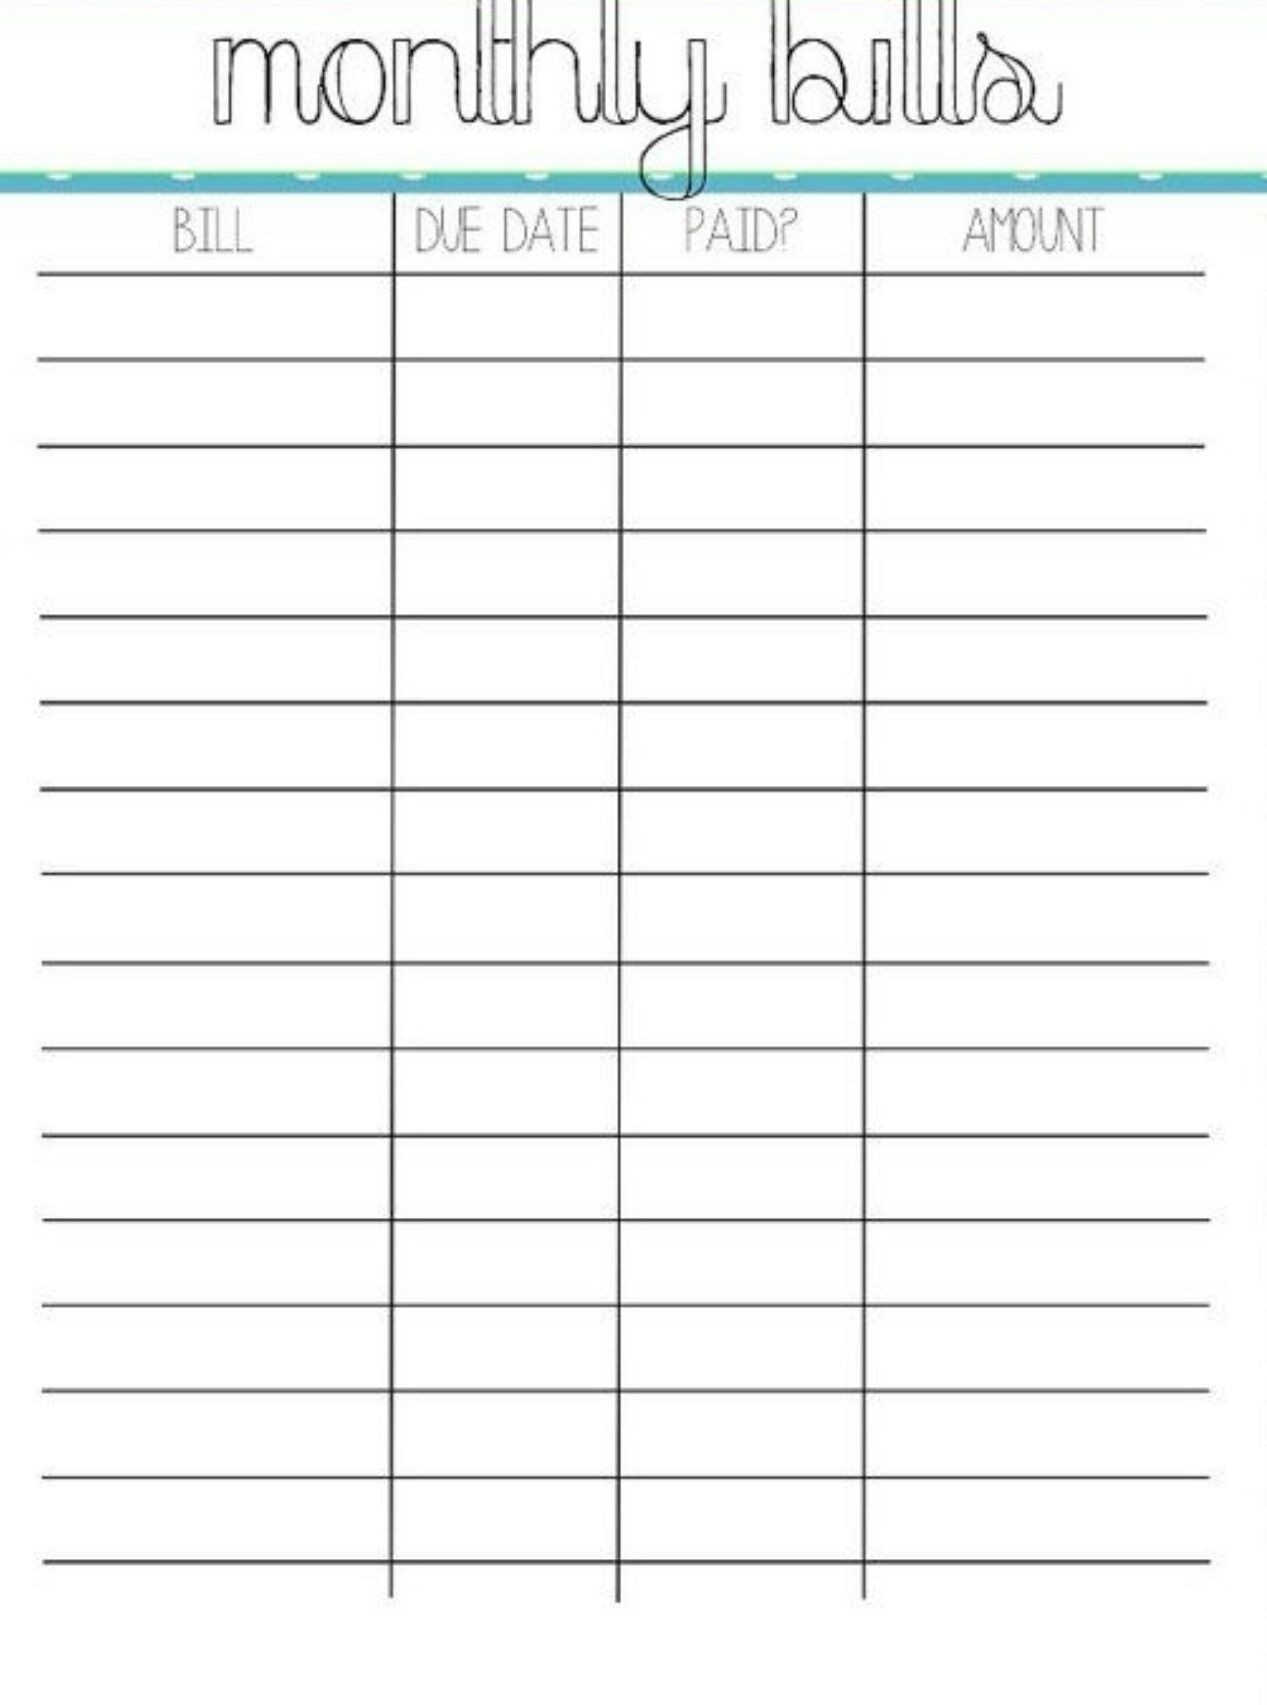 Bill Payment Worksheet Printable Template Calendar Design